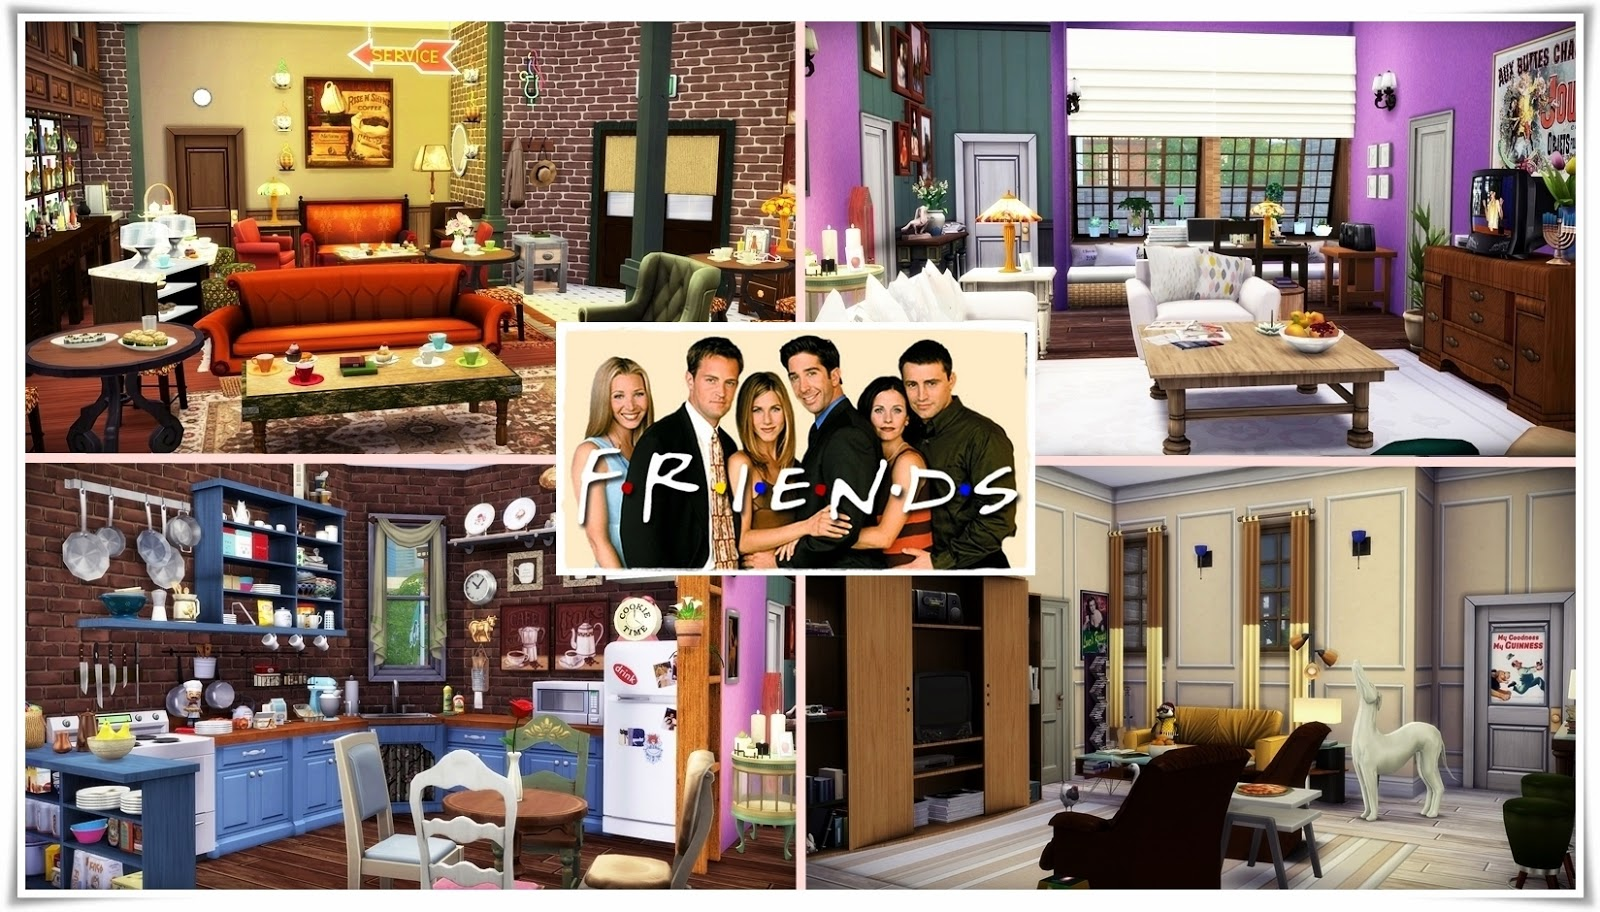 Frau engel ts4 friends 39 apartments for Appartement design sims 3